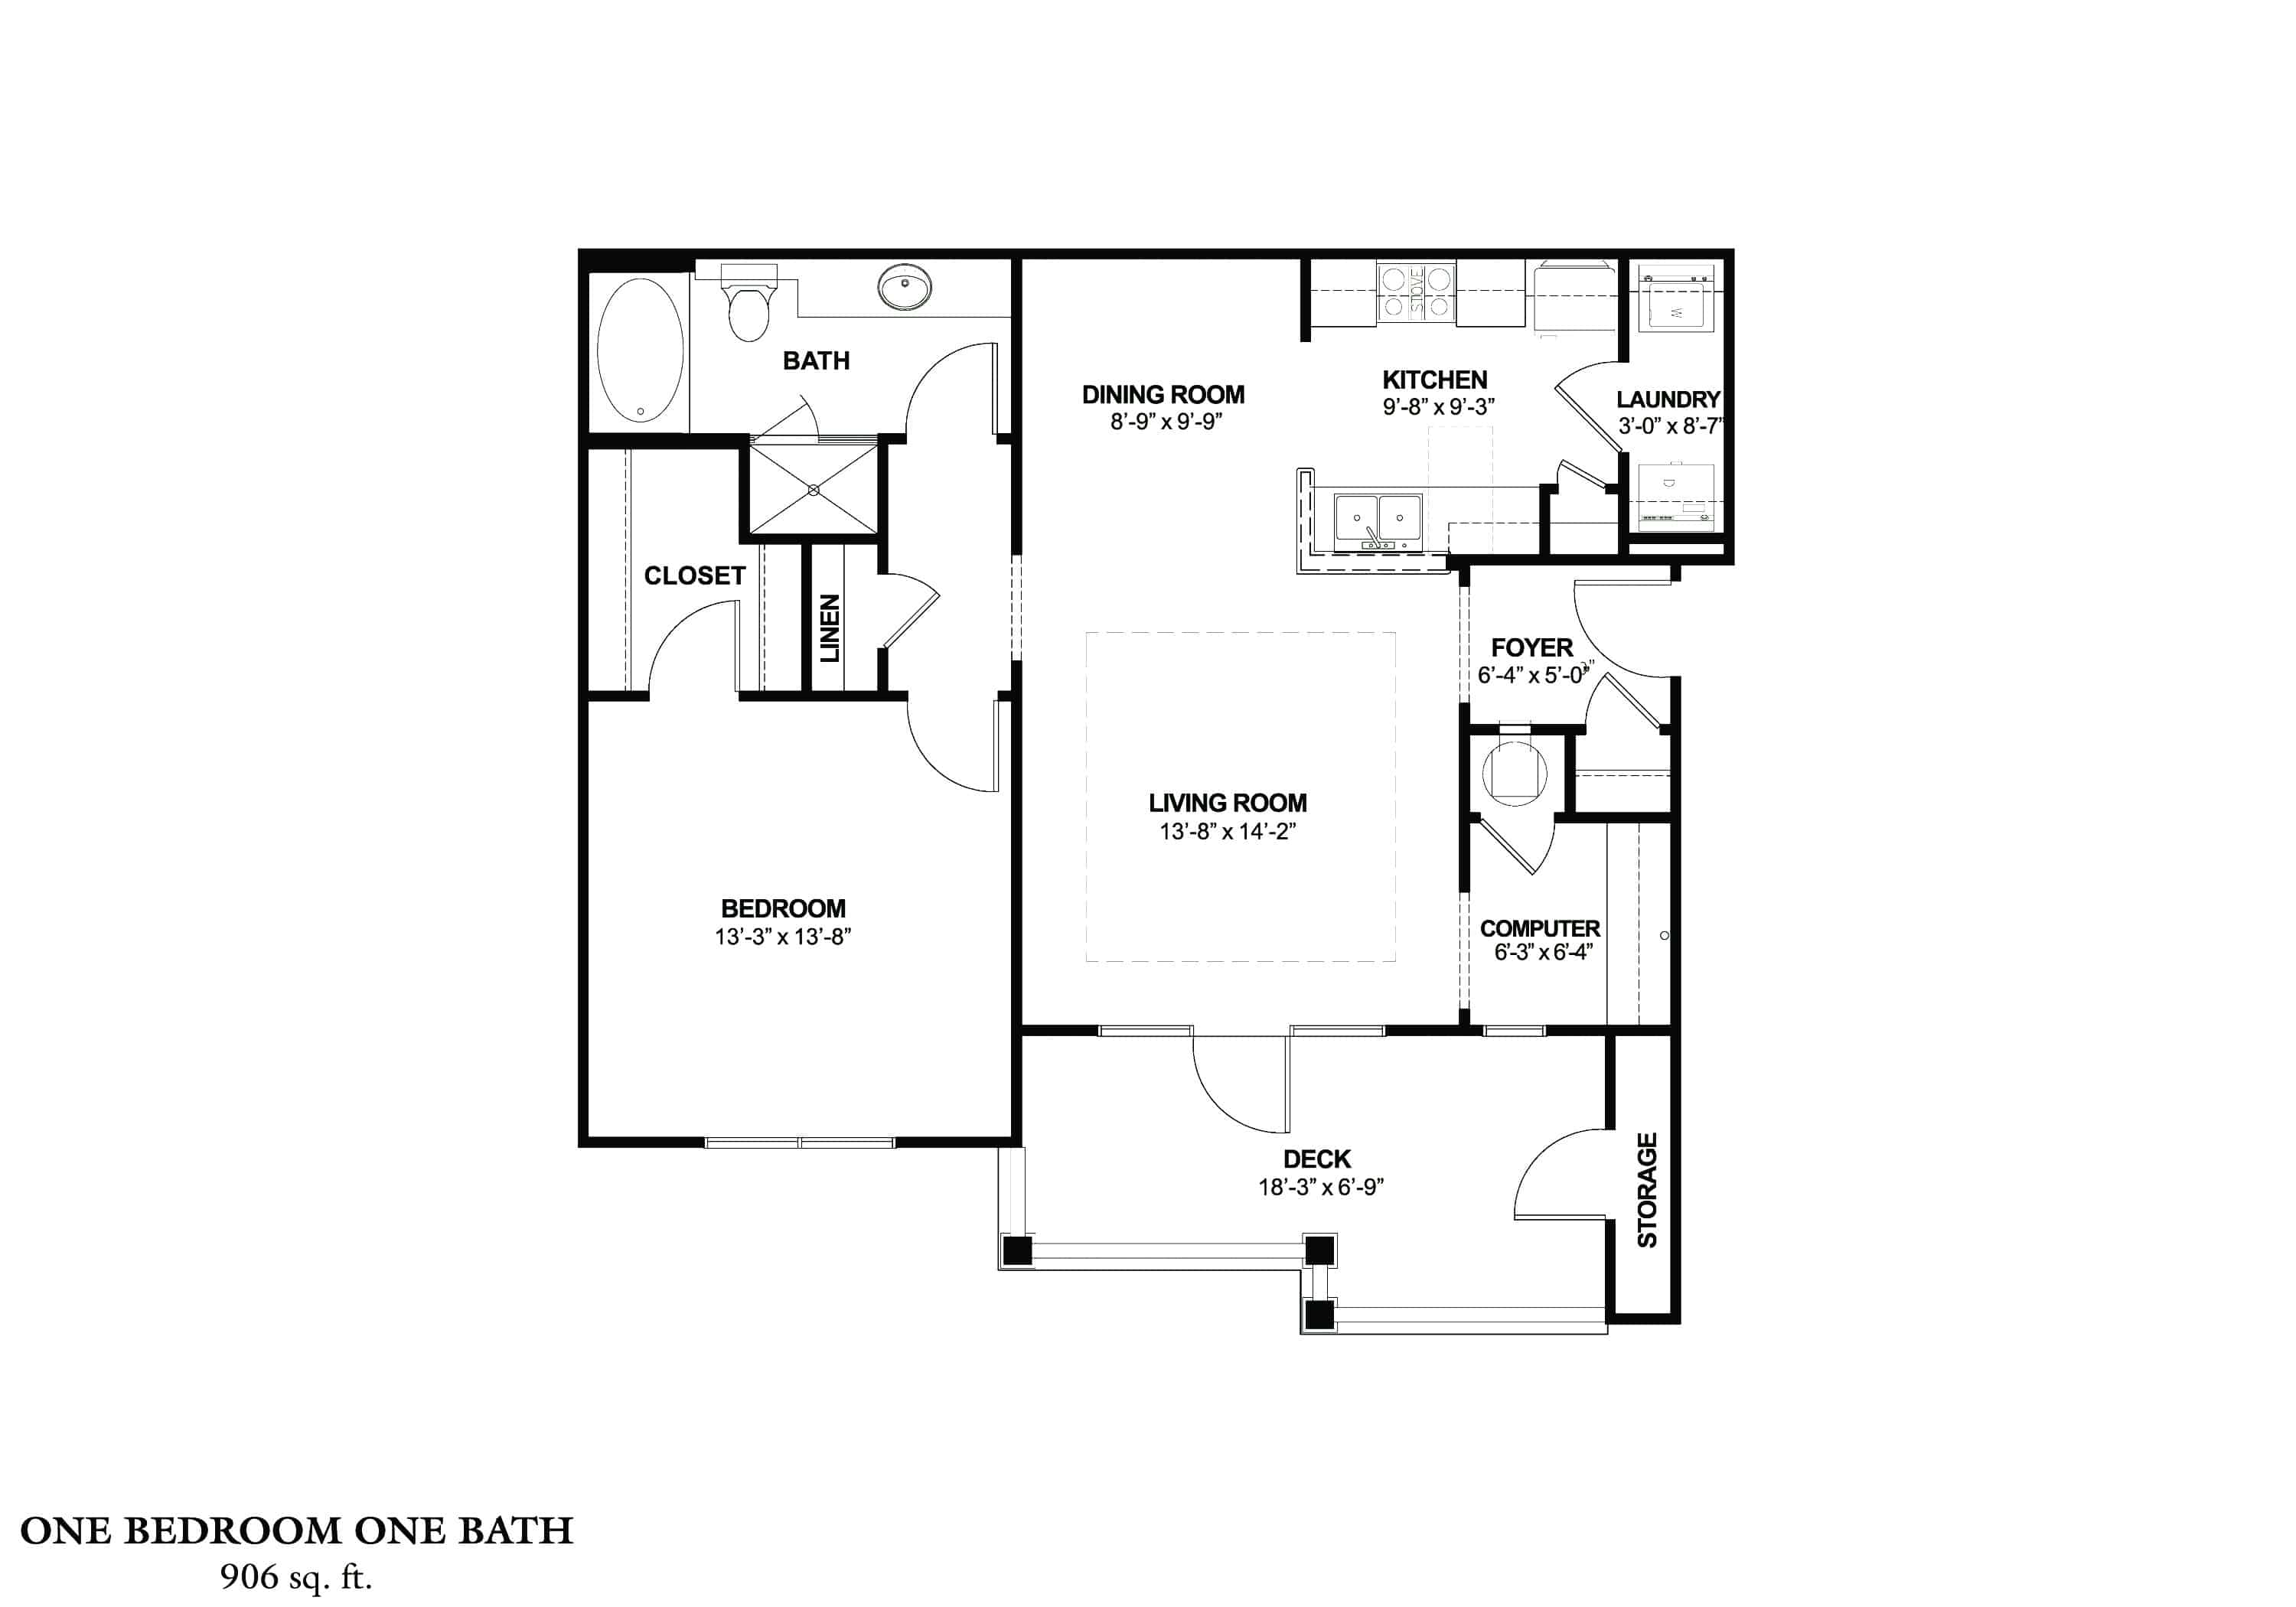 One Bedroom (A) Approx. 906 sq. ft. with 169 sq. ft. Deck From $870 Beds 1 Baths 1